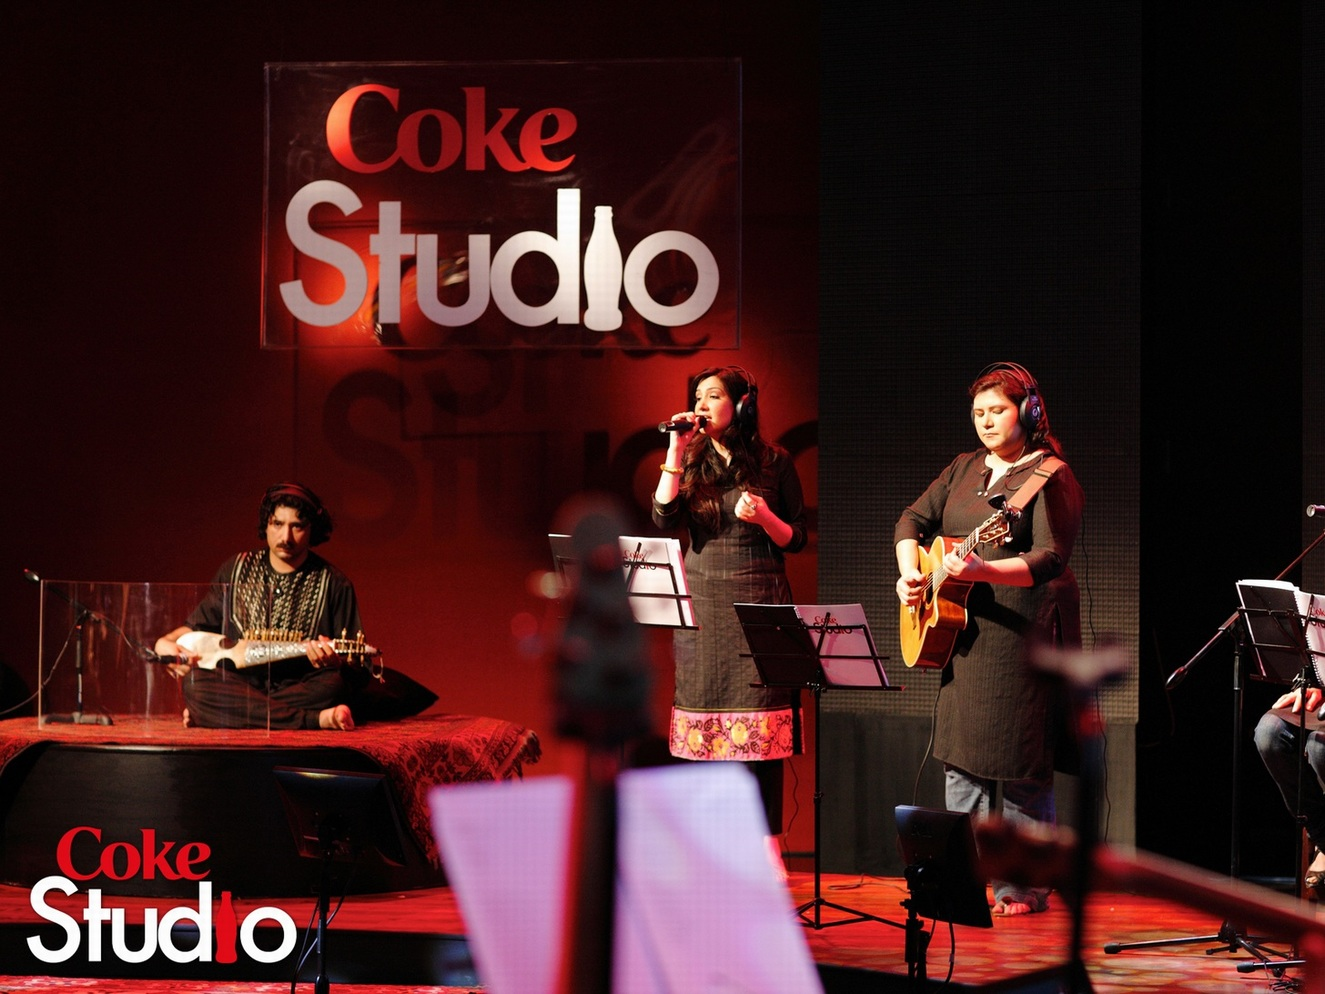 Coke Studio, Studio, Best Studio, Music, Best Music, Deaf People, Music For Deaf People